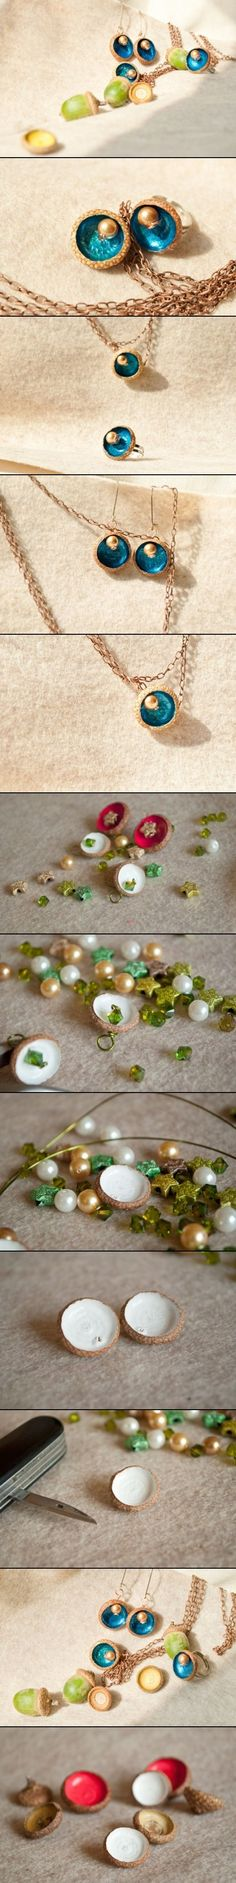 DIY Necklace Of Acorns